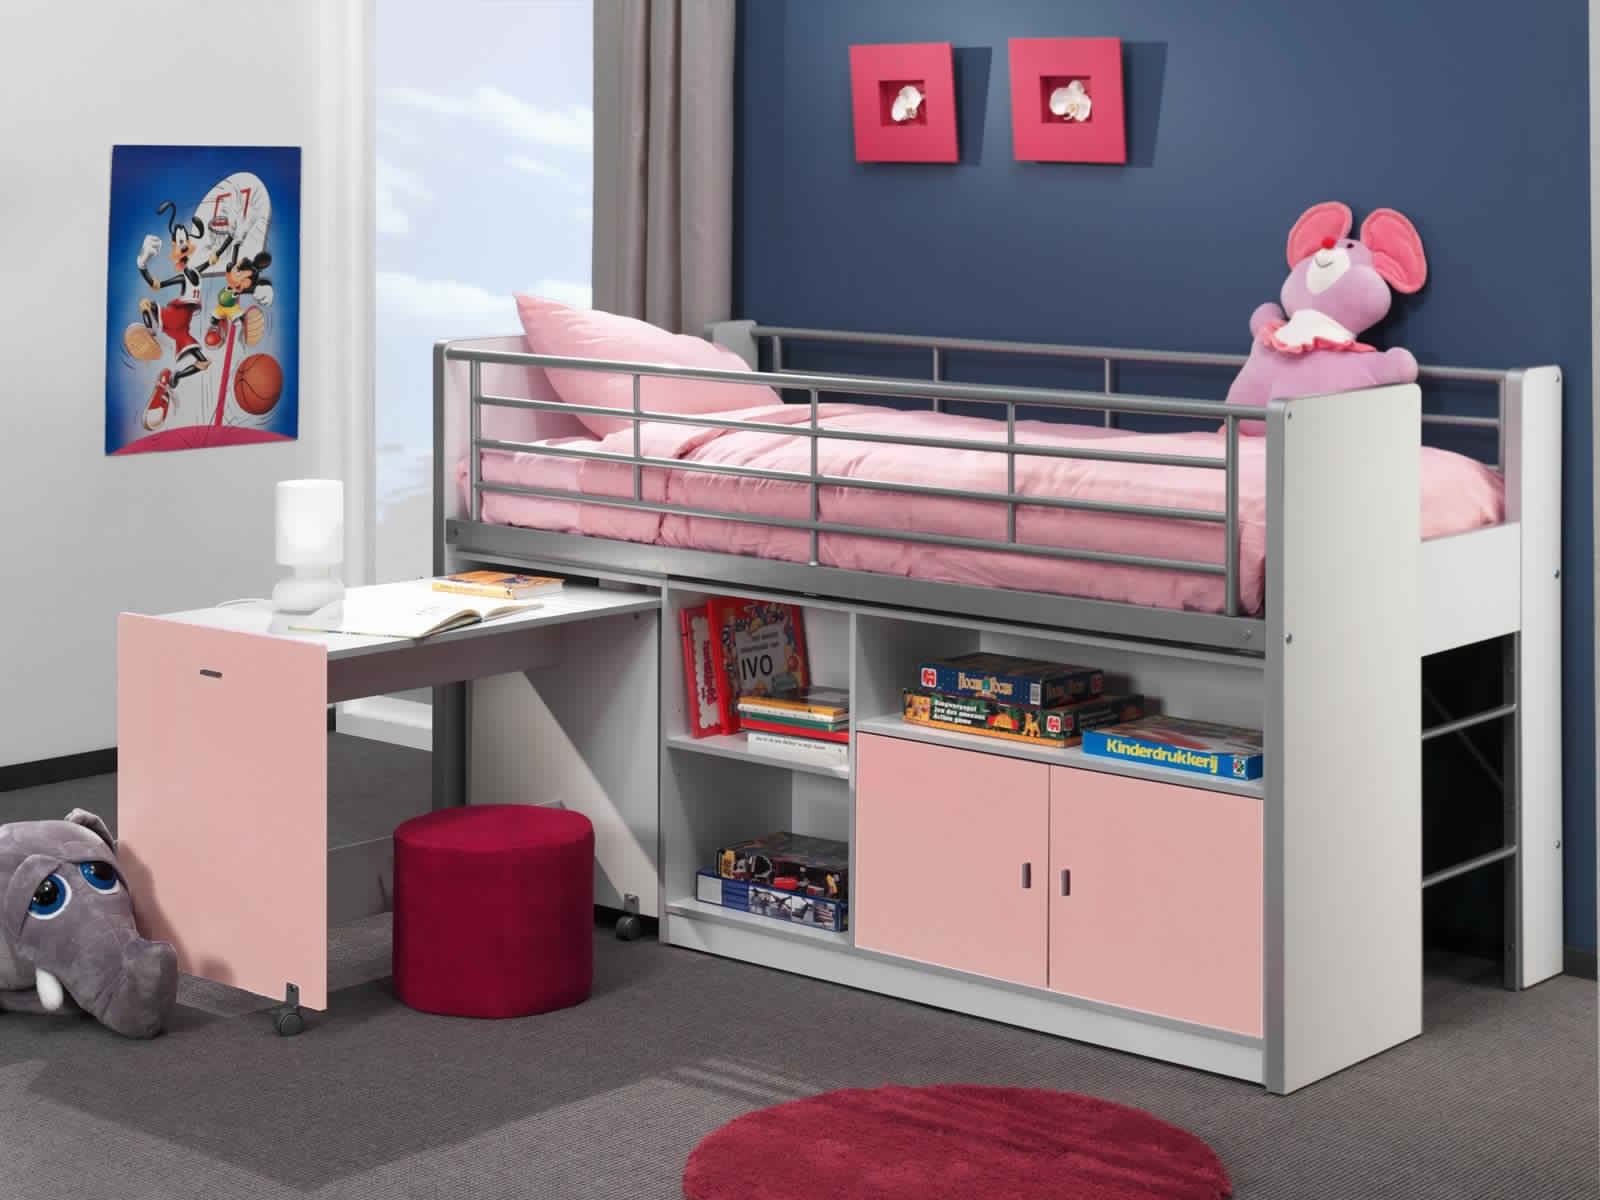 Bunk Bed with Desk in soft white and pink colors for teenagers